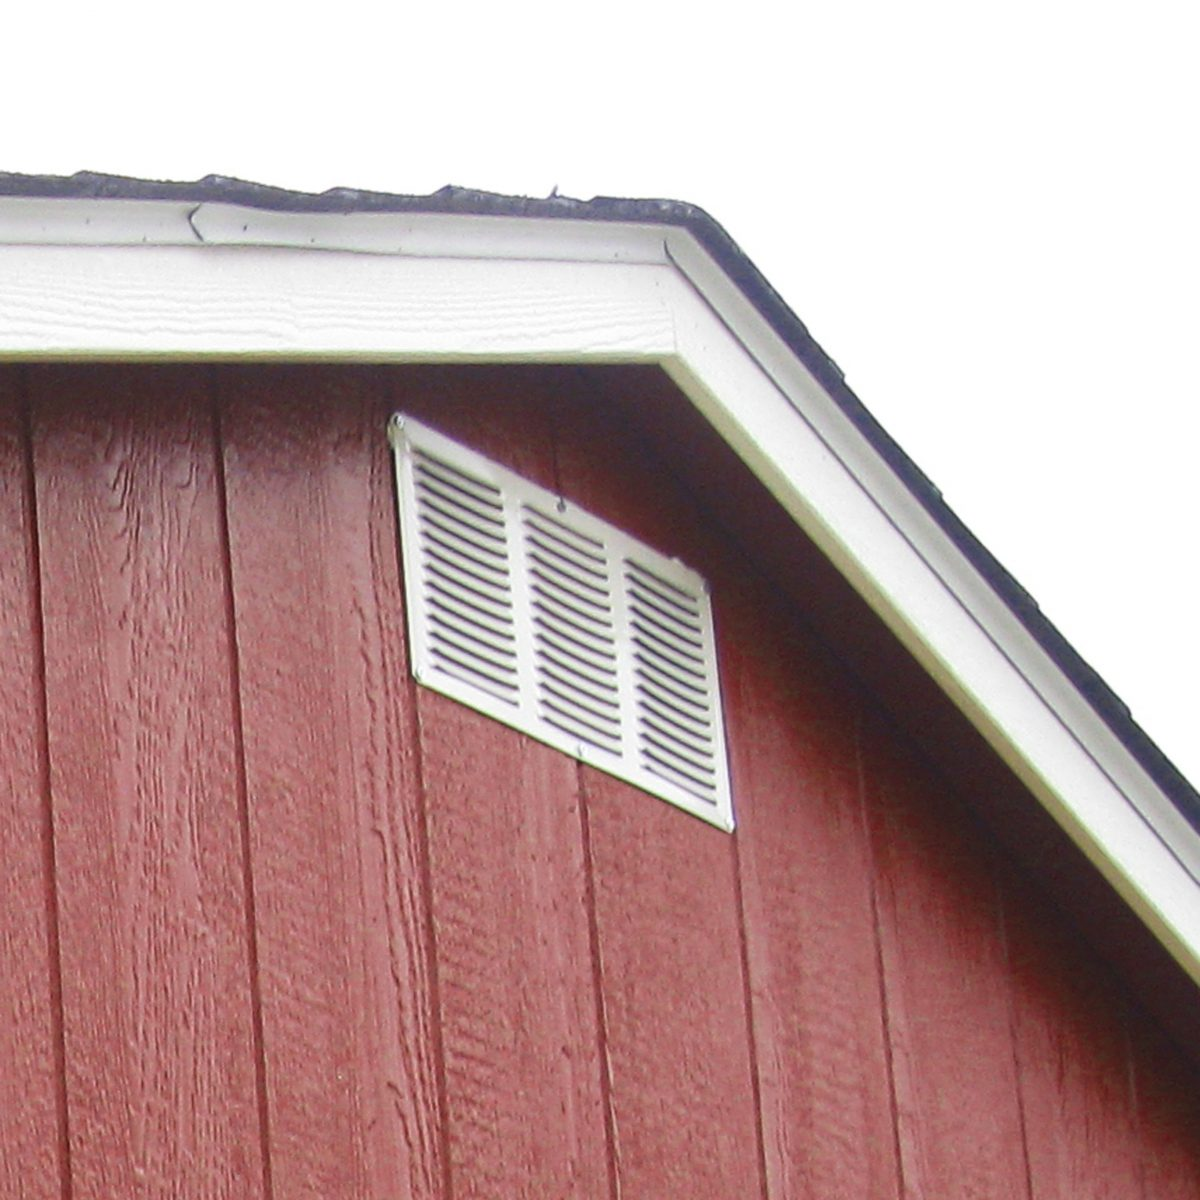 Storage Barns In Ga Get A Yard Barn Built Just For You